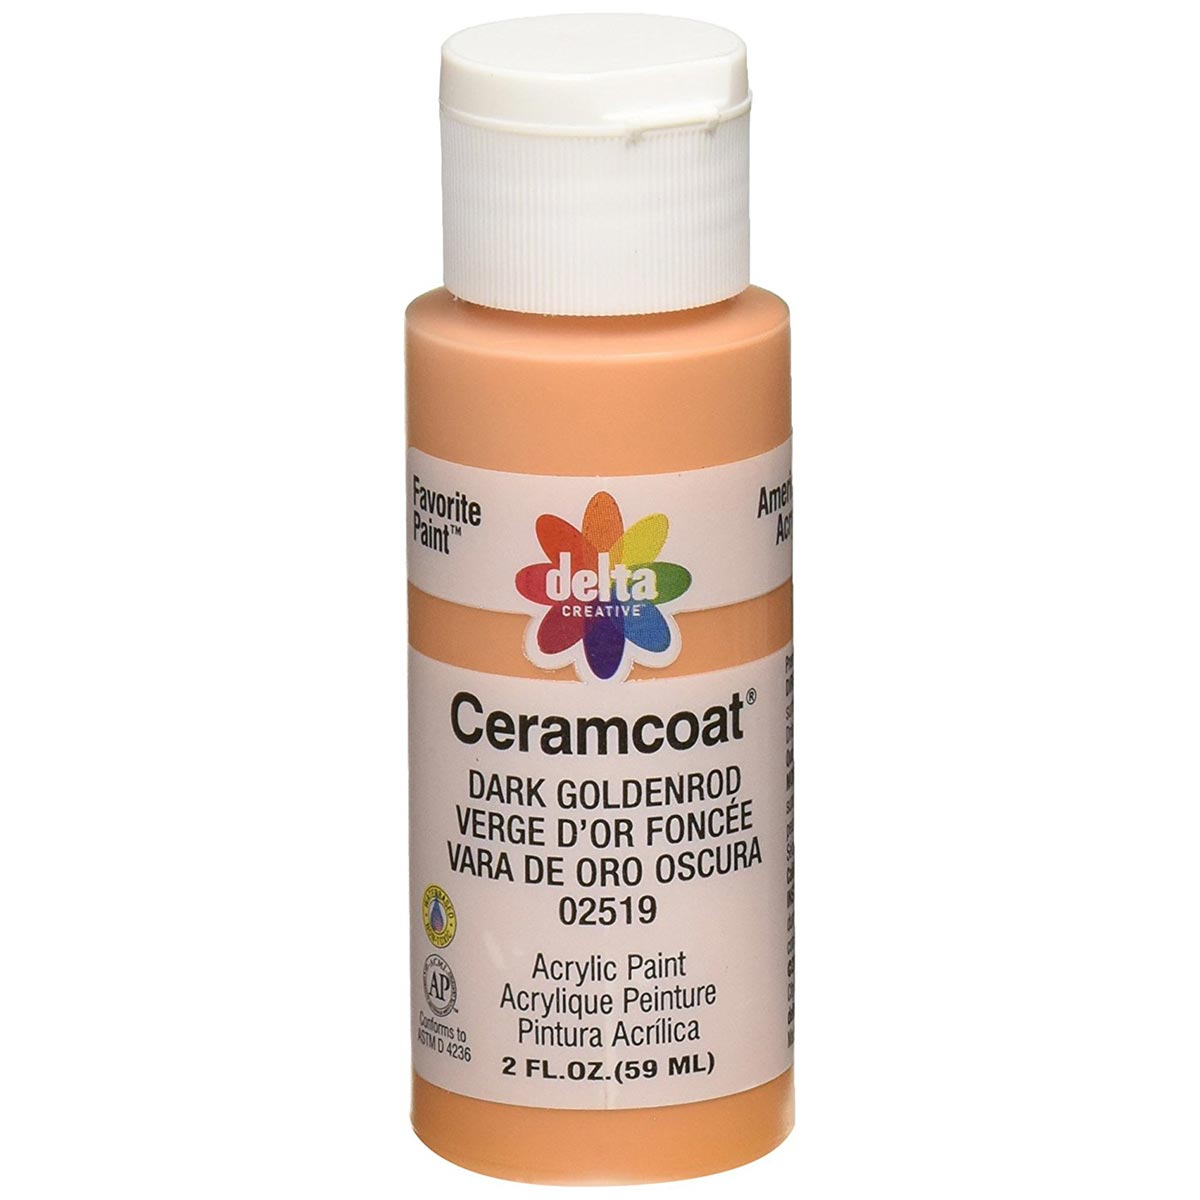 Delta Ceramcoat ® Acrylic Paint - Dark Goldenrod, 2 oz. - 025190202W